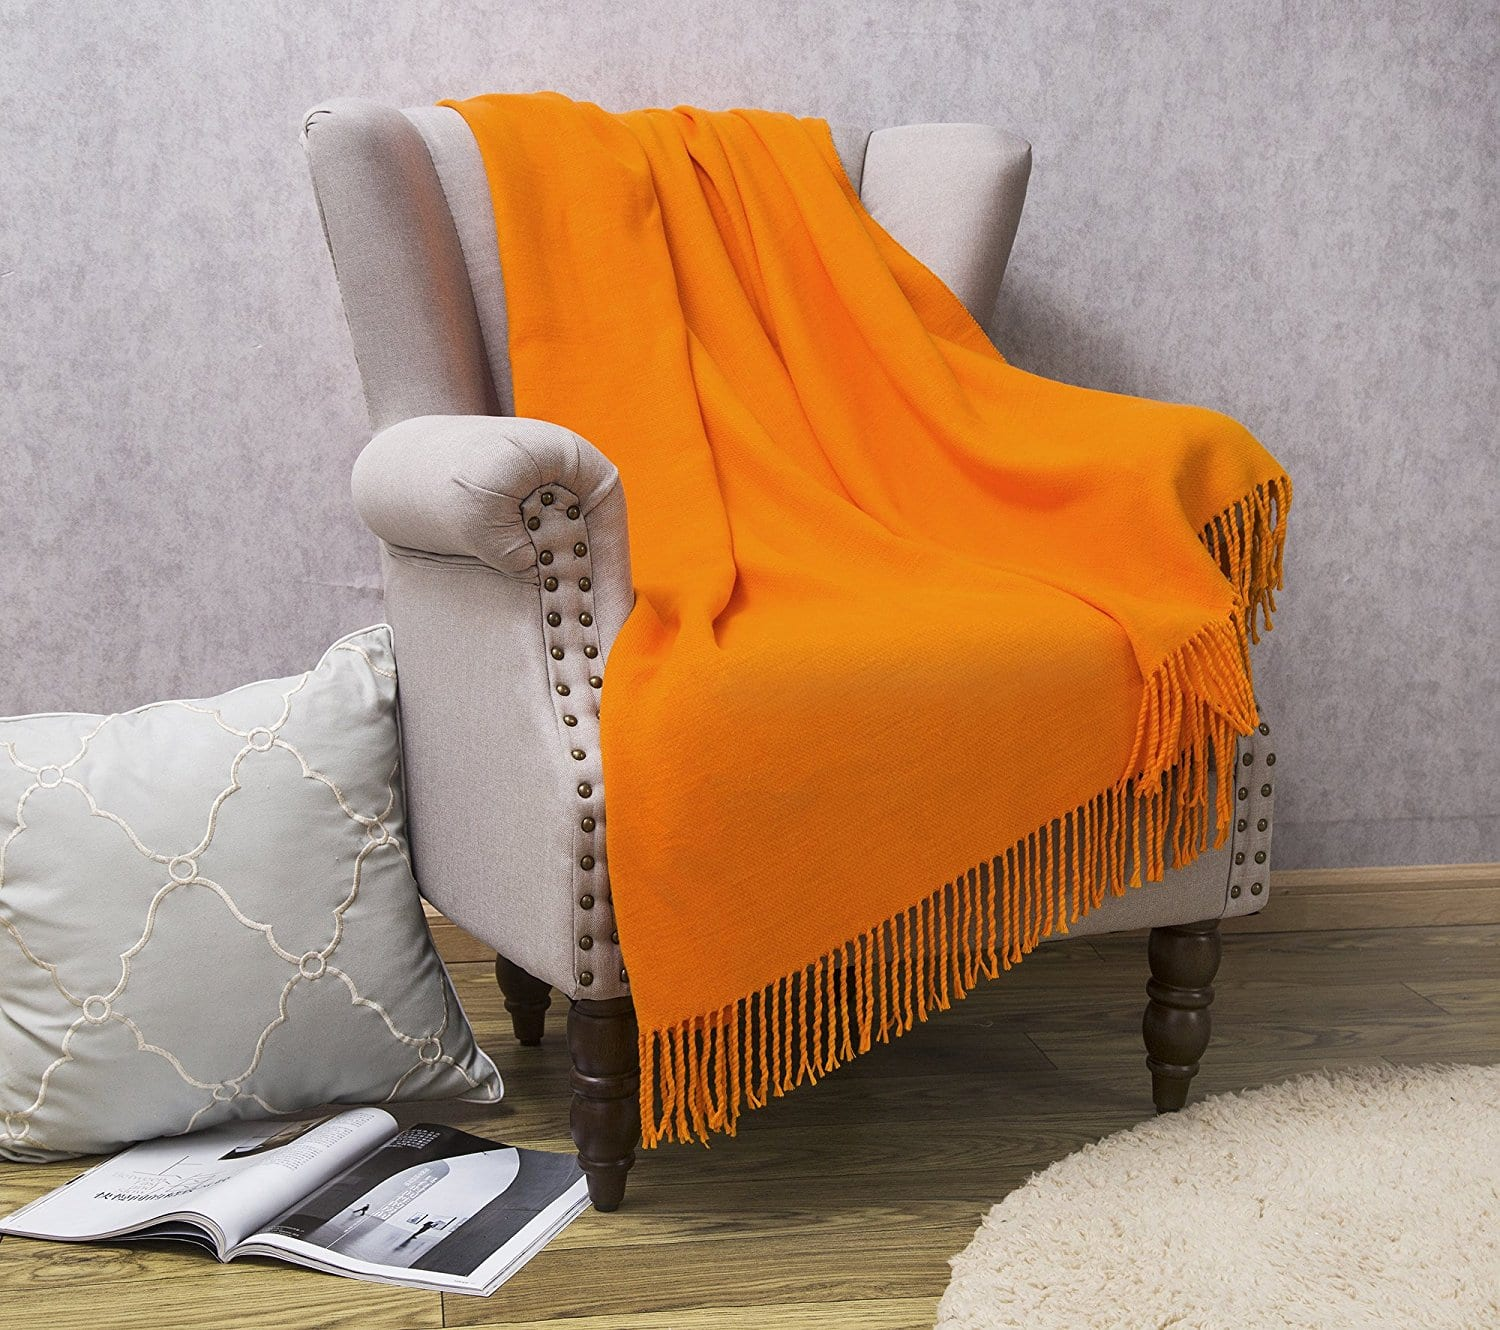 HollyHOME has All Season Throw Blanket Orange 50 x 60 Inches Luxury Soft with Tassels $8.80 AC @Amazon